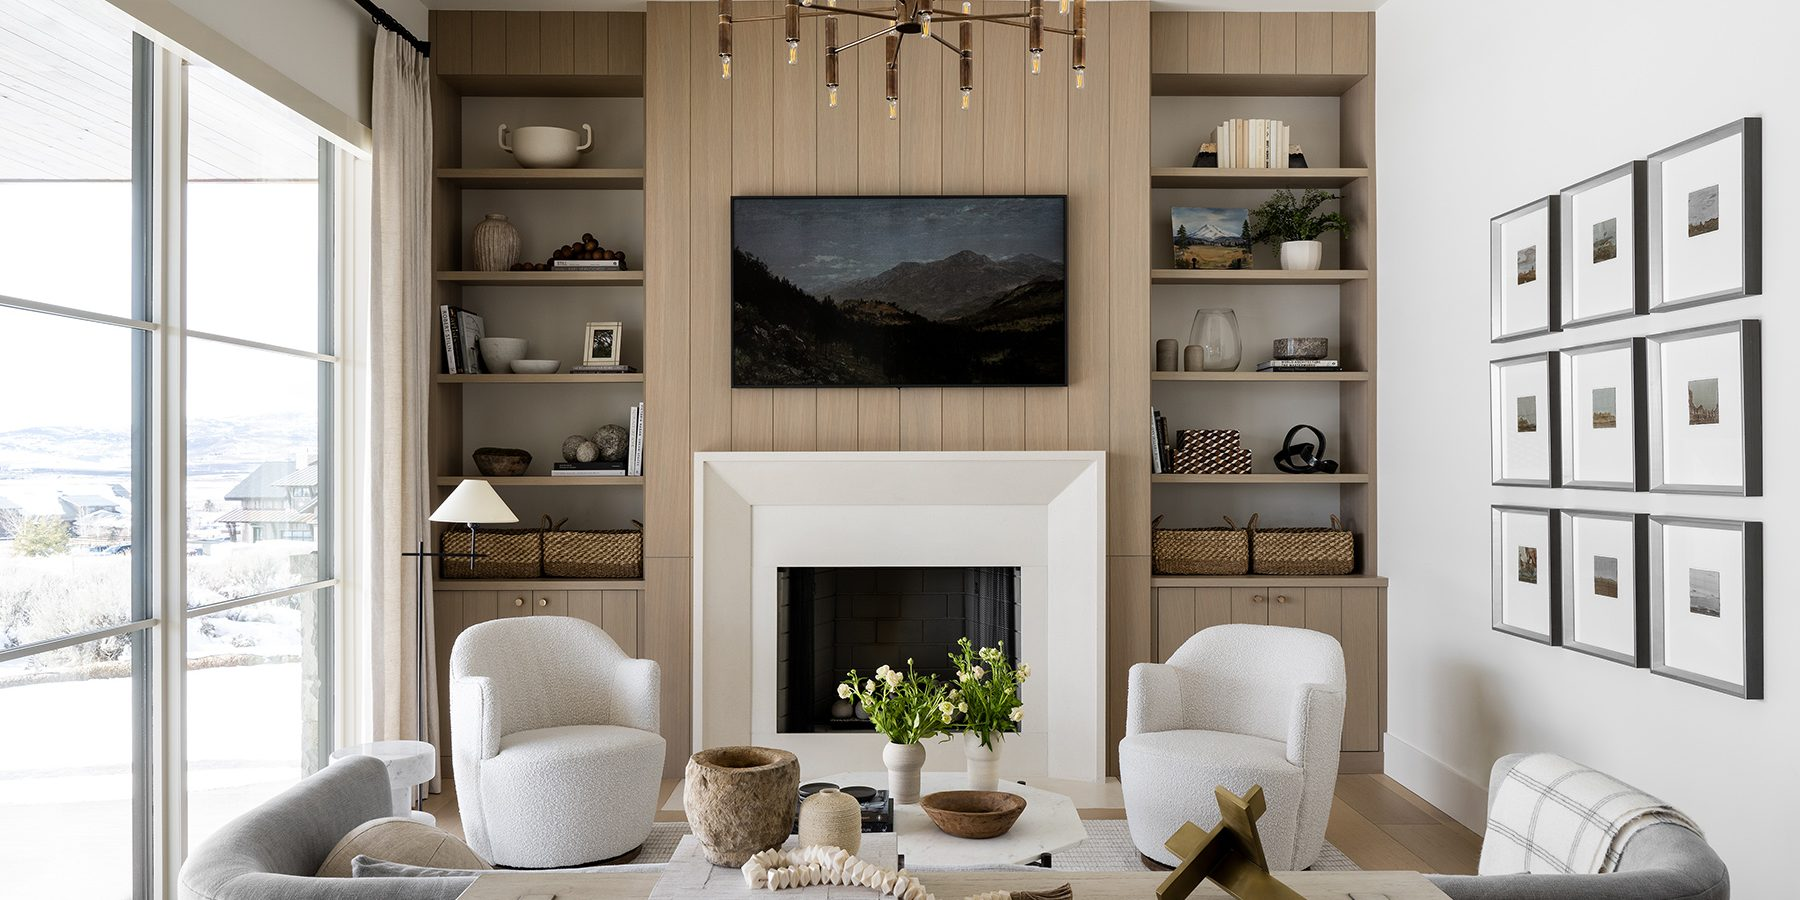 Park City Contemporary Project: Part One